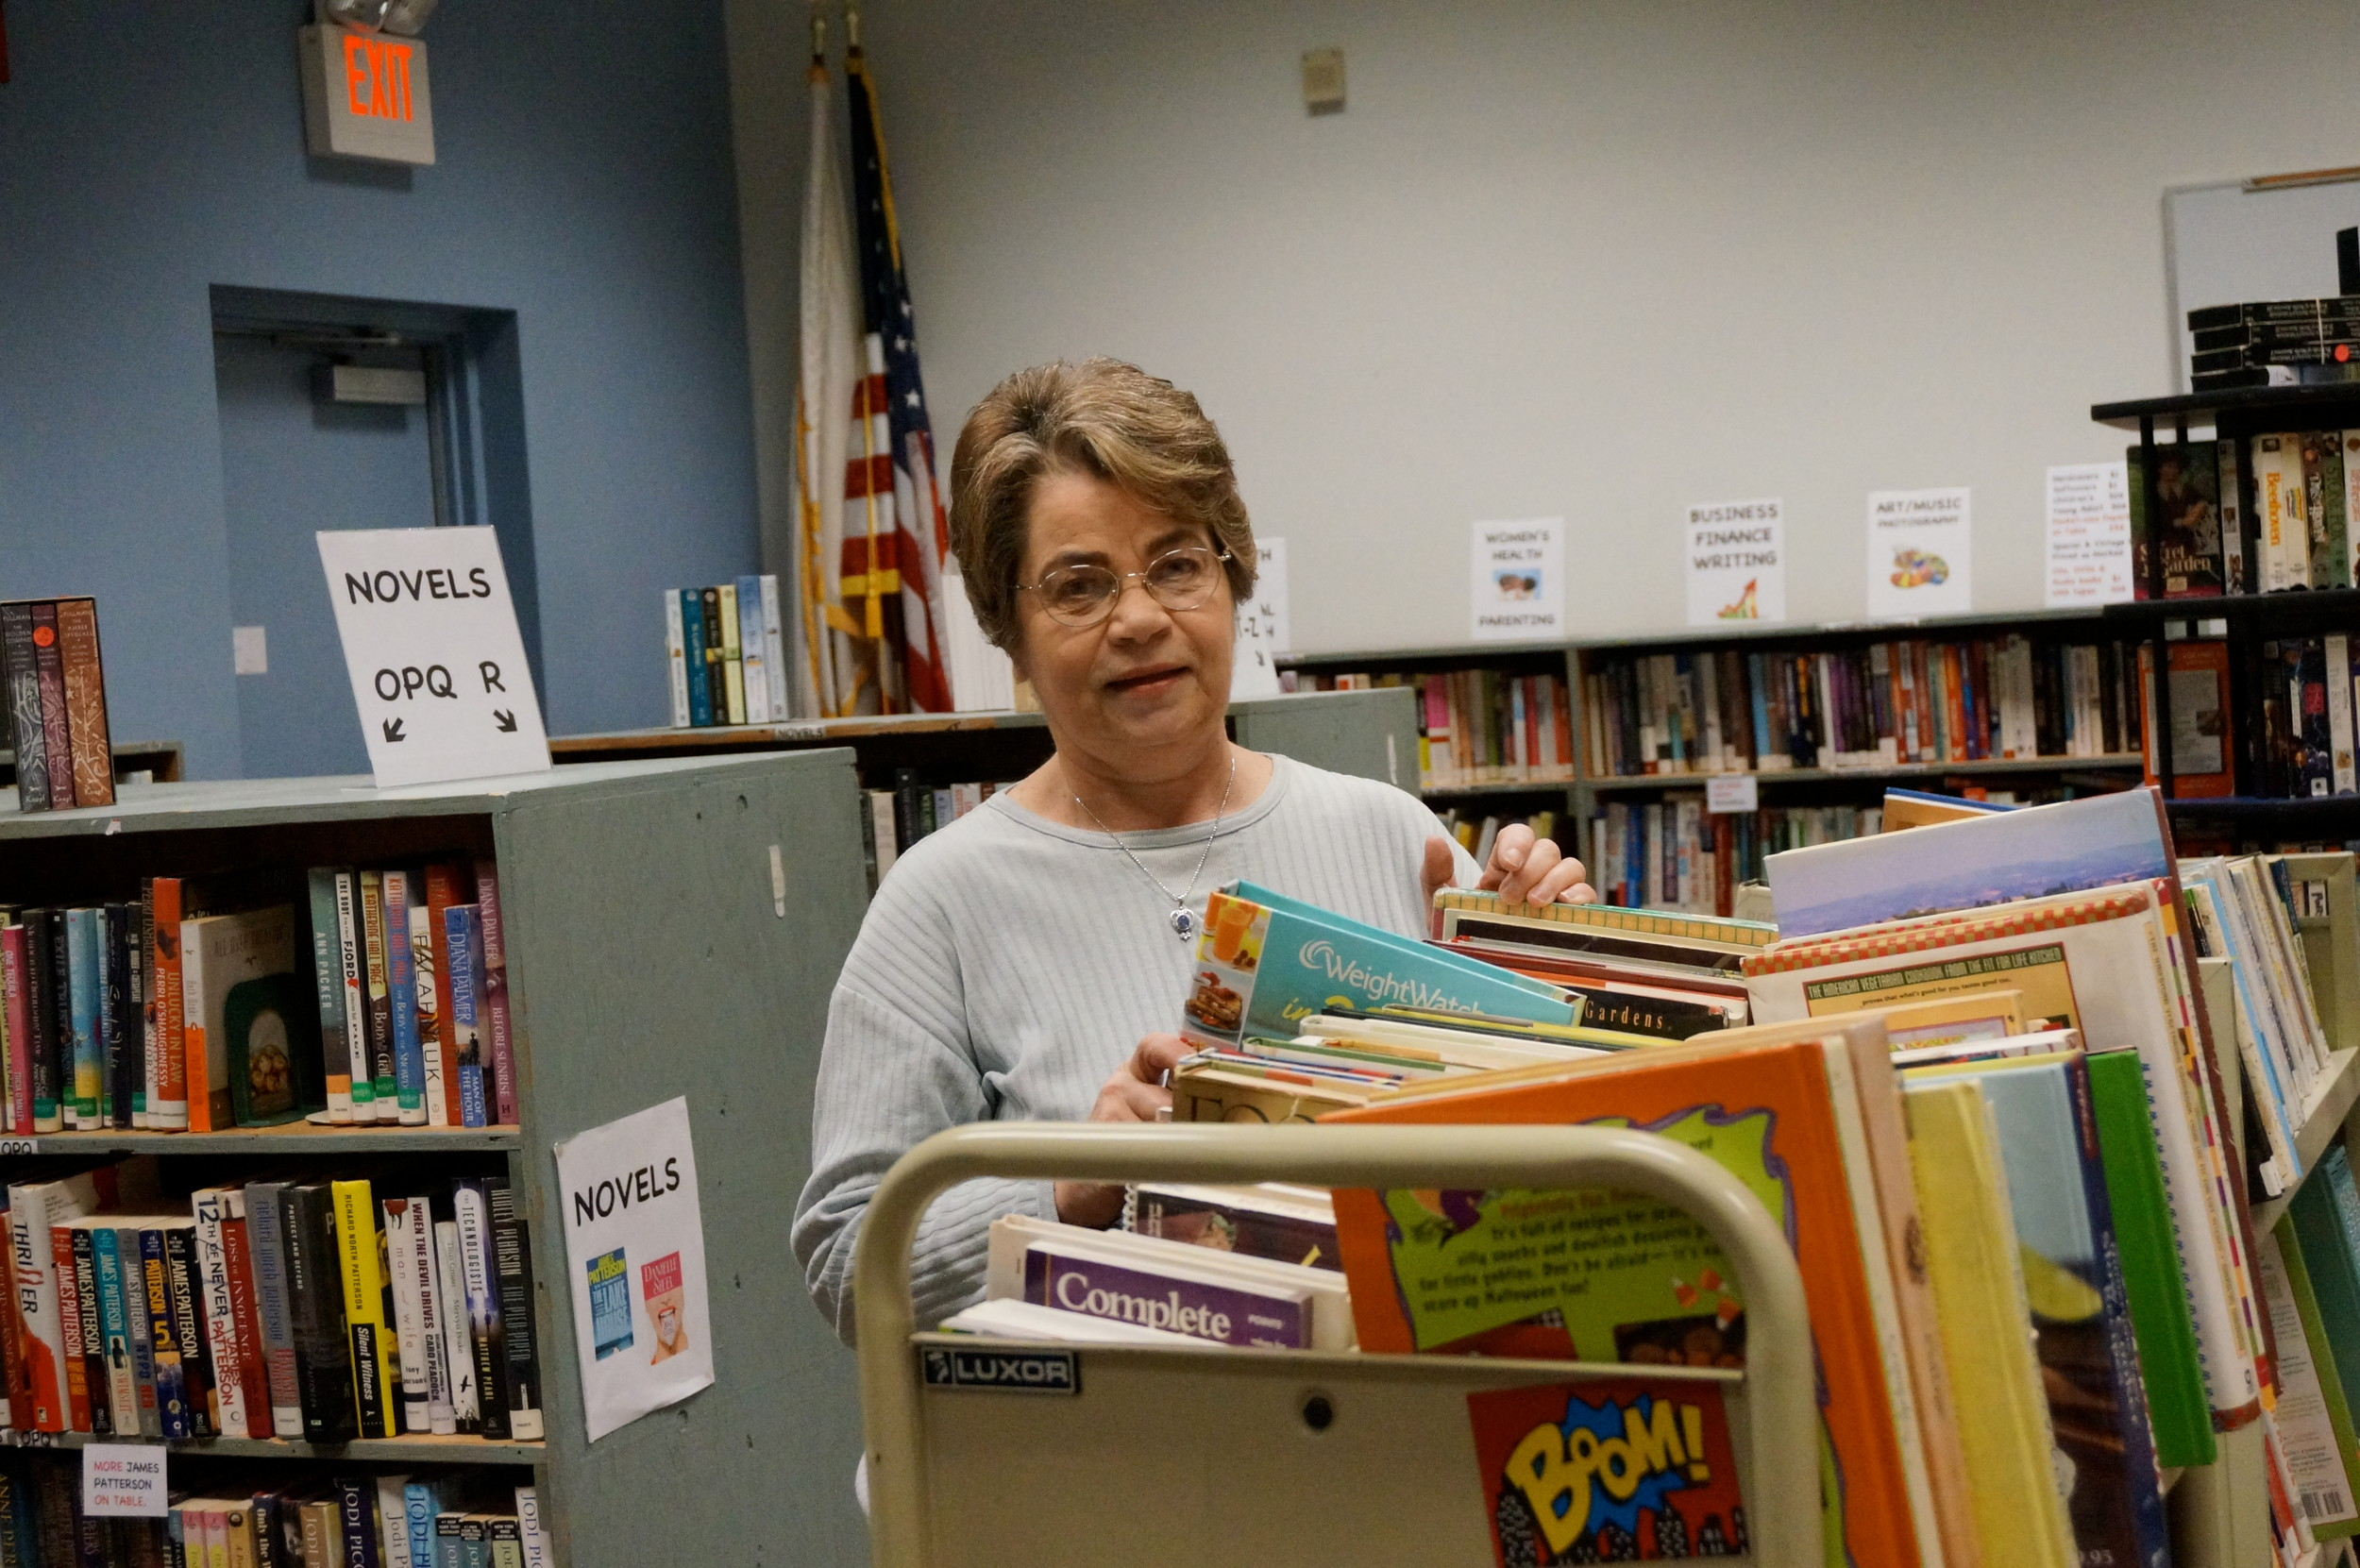 Ginnie Hogan, Friends volunteer, stocks some of the thousands of gently used books that will be selling at very reasonable prices at the Fall Book Sale at East Providence's Weaver Library October 19-22.